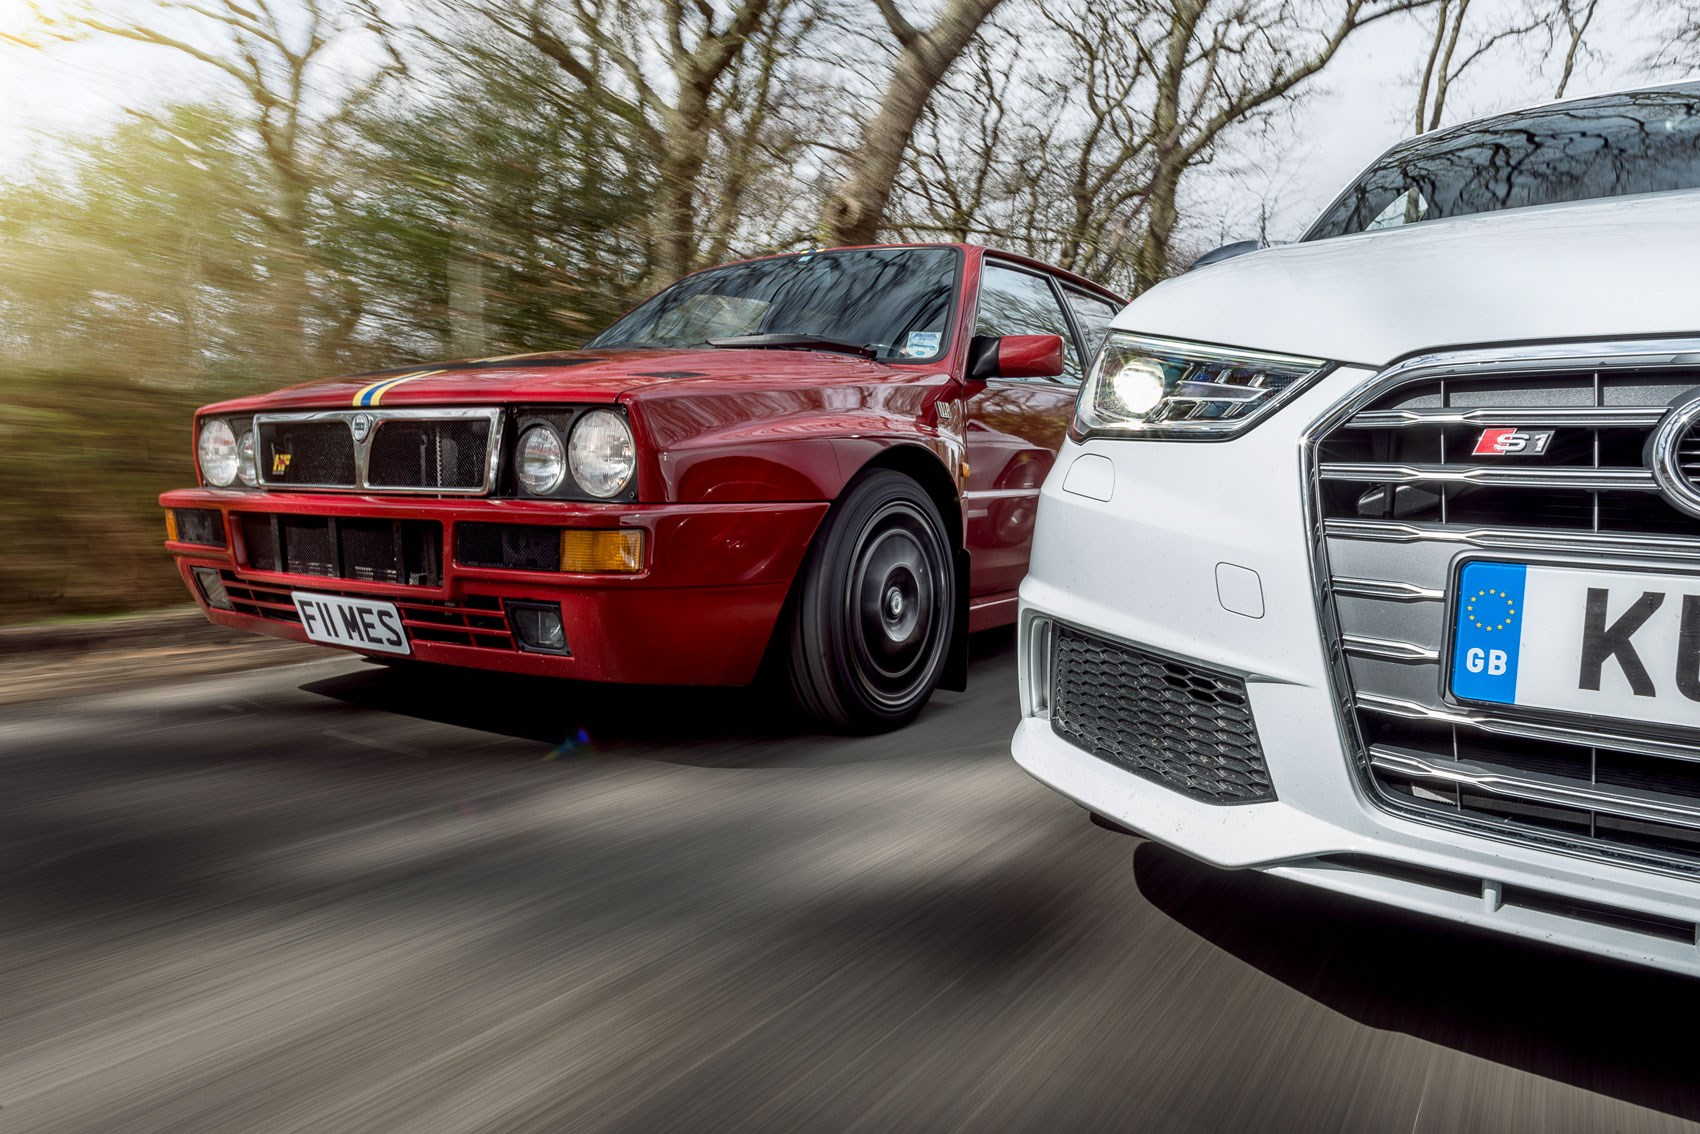 Icon Buyer New Audi S1 Or Used Lancia Delta Hf Integrale